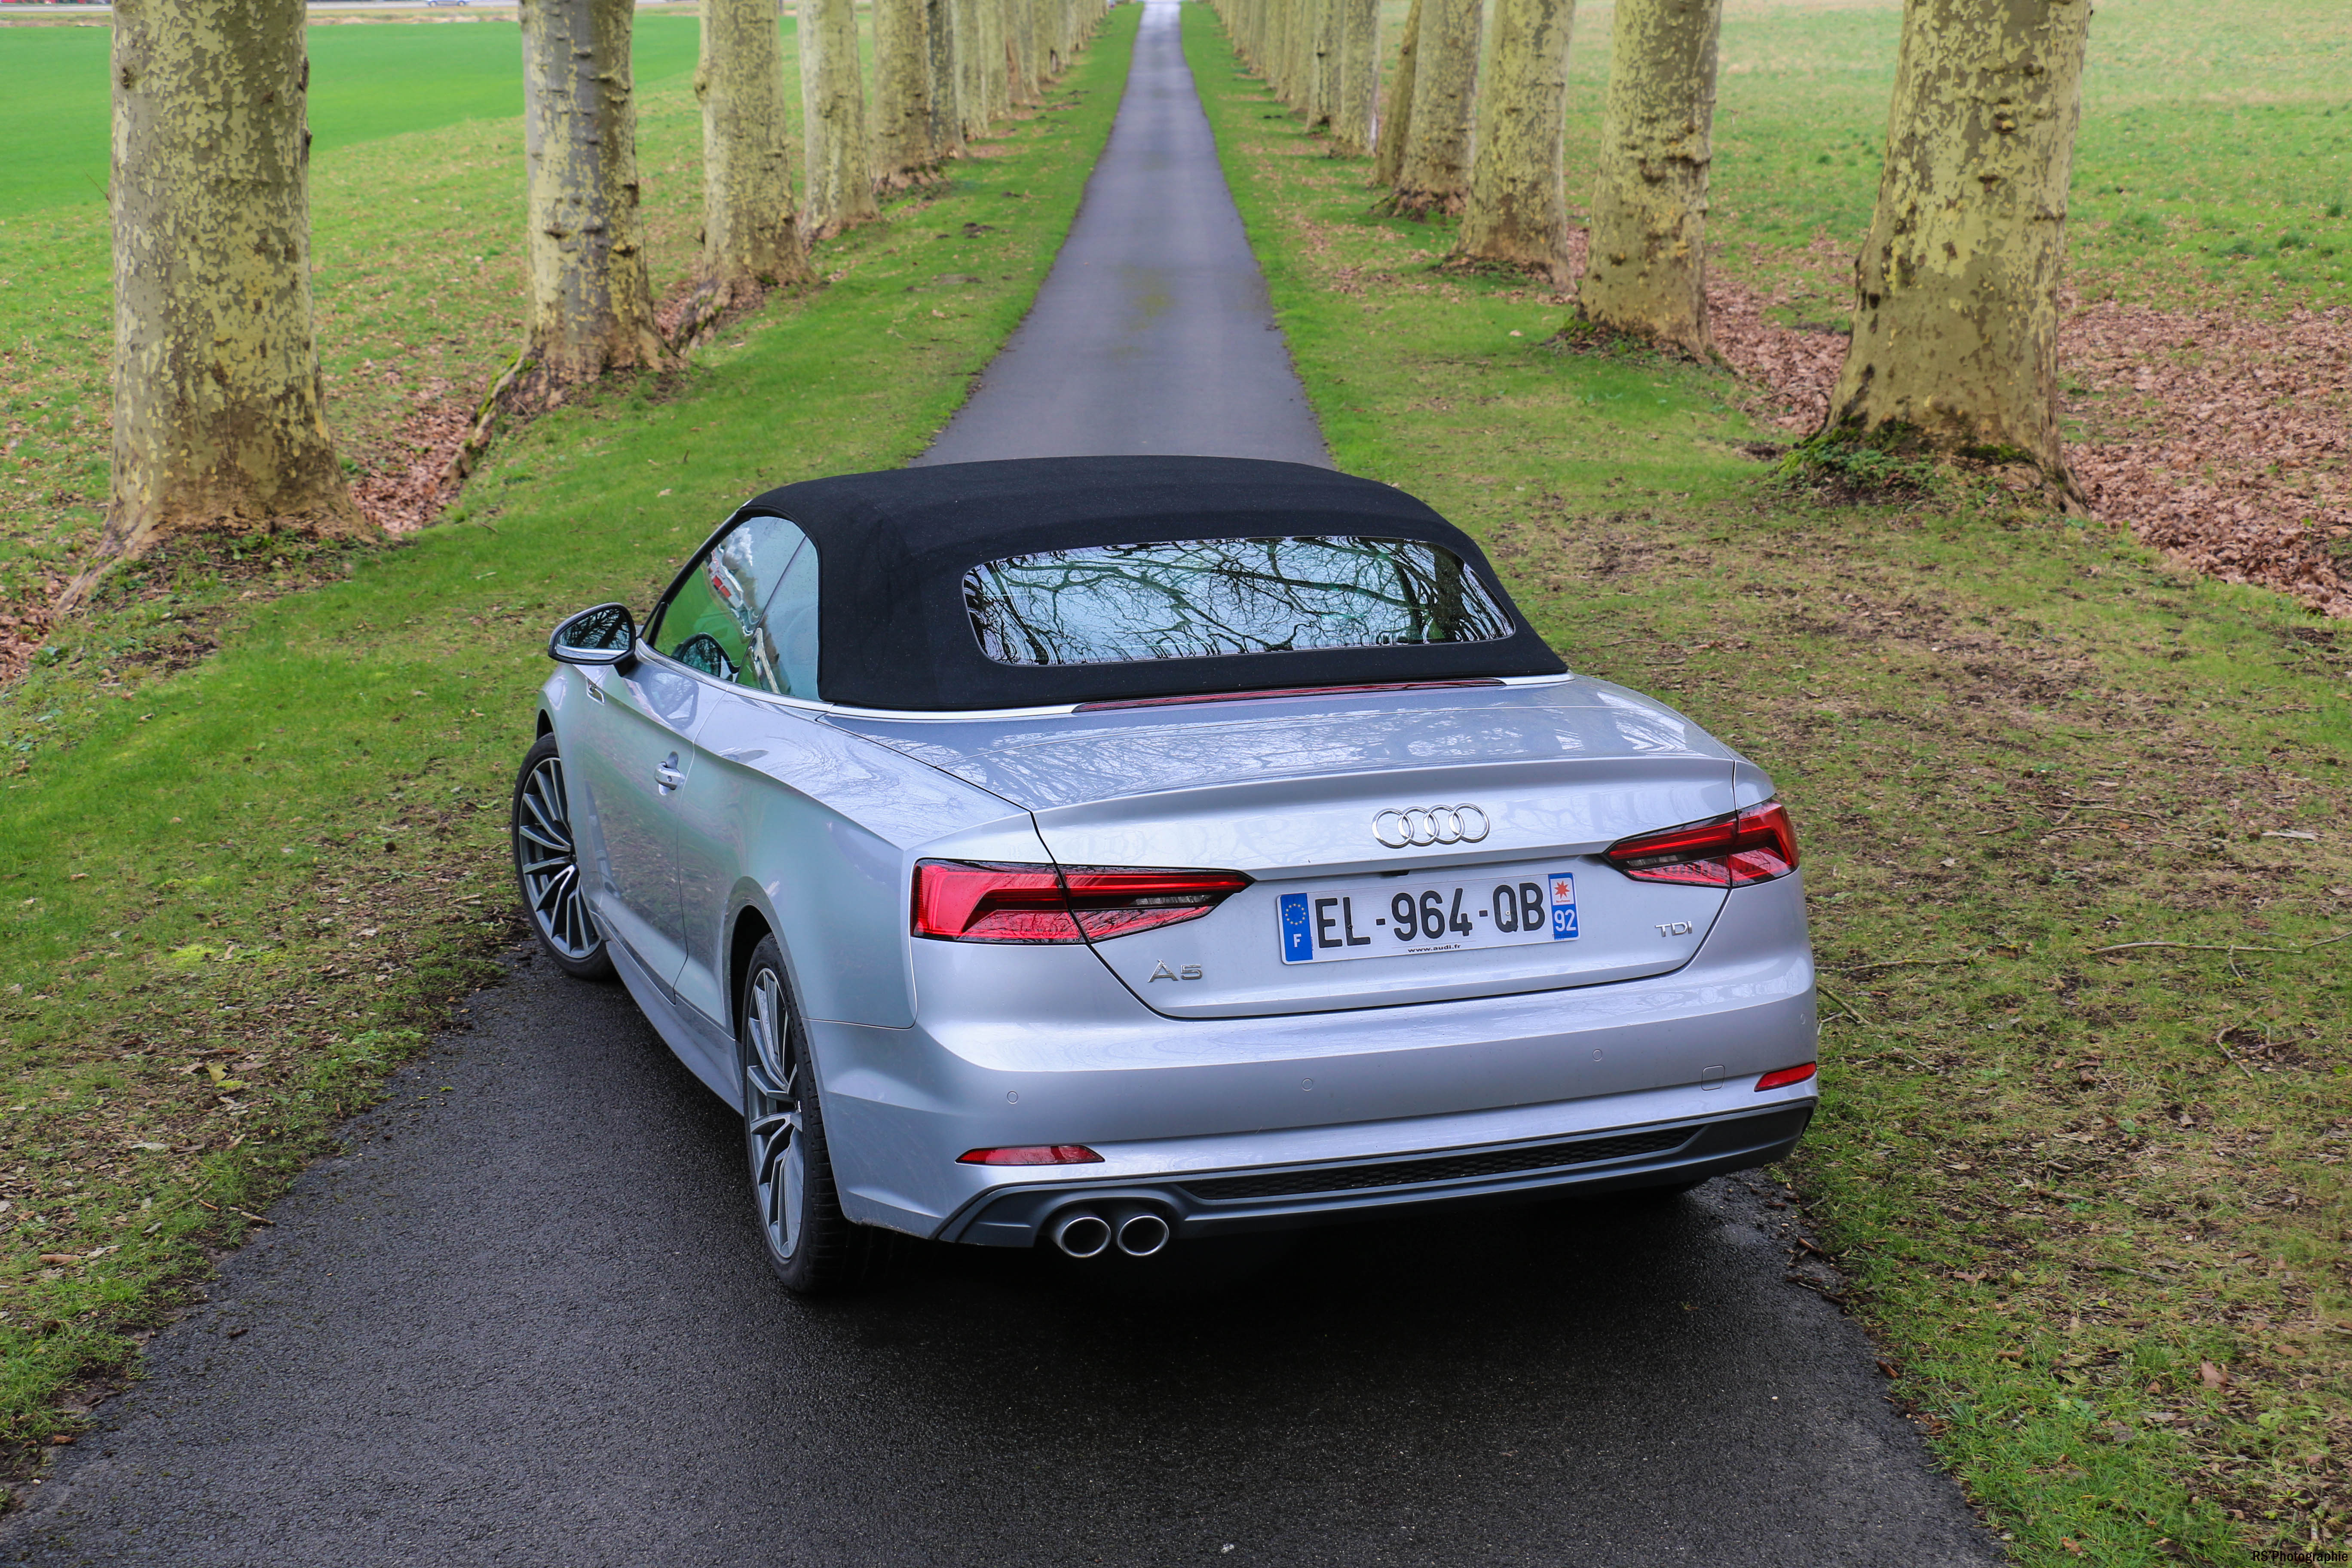 audia5cab15-audi-a5-190-tdi-cabriolet-arriere-rear-Arnaud Demasier-RSPhotographie